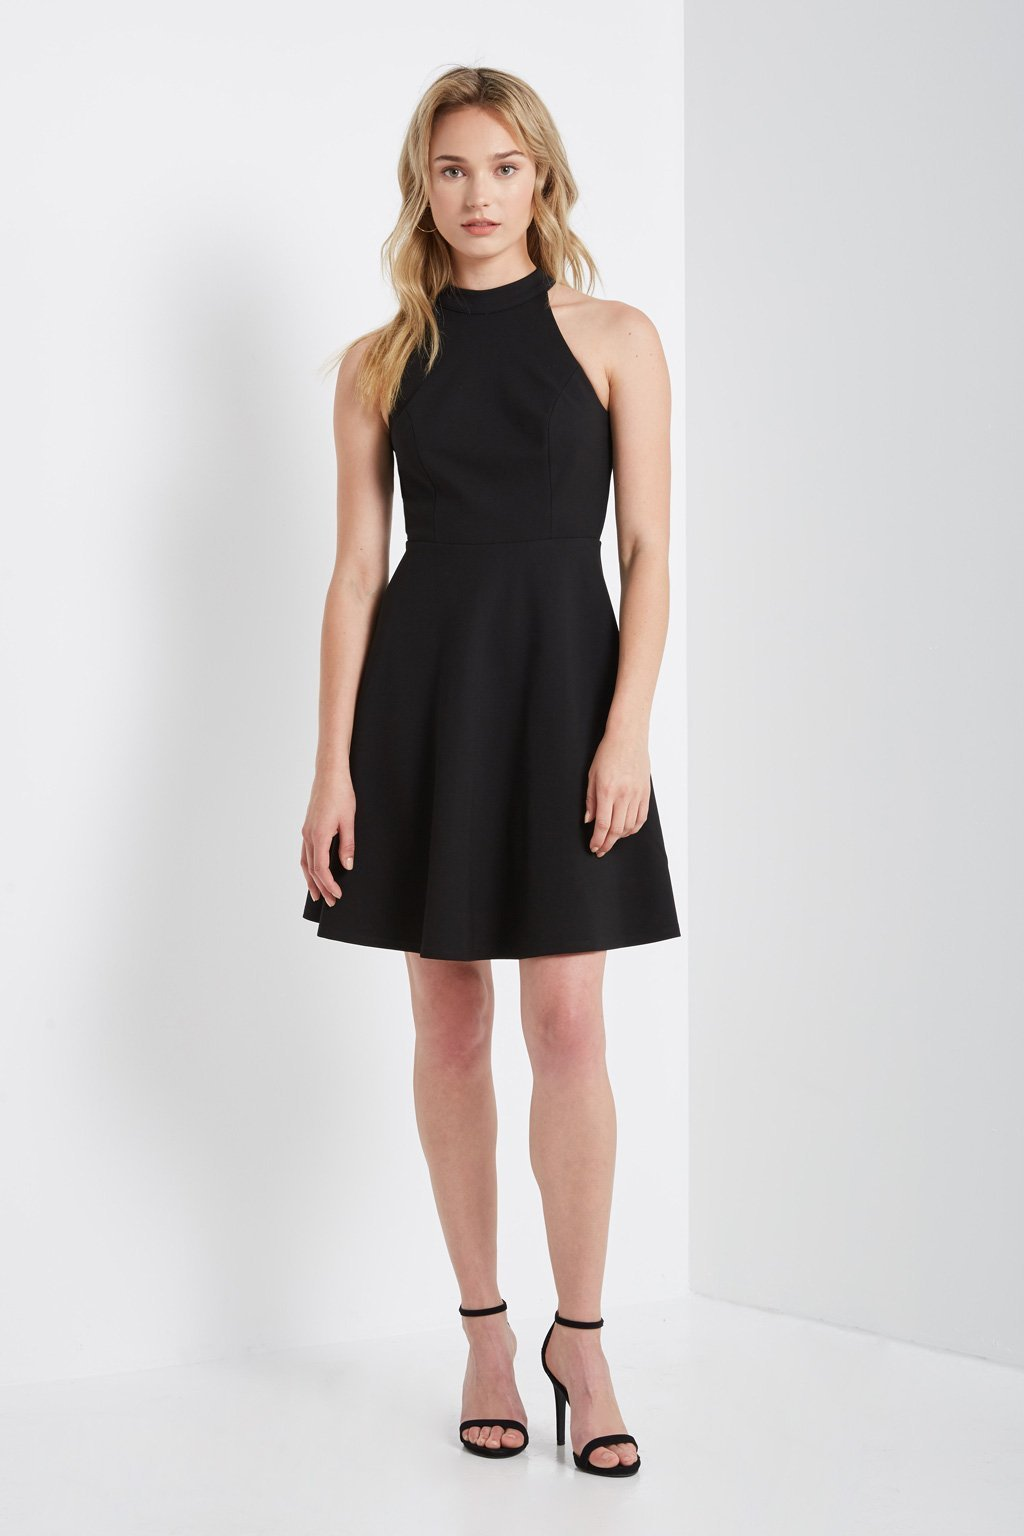 Poshsquare Dress Black Meek Halter Neck Fit and Flare Dress